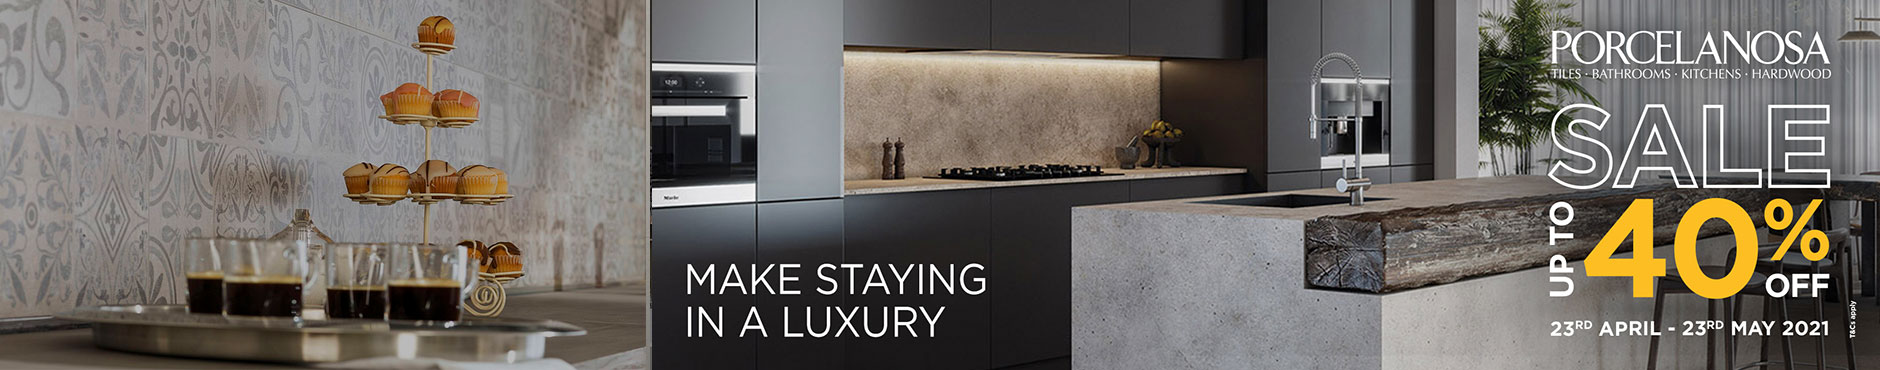 Porcelanosa Sale 23rd April - 23rd May 2021